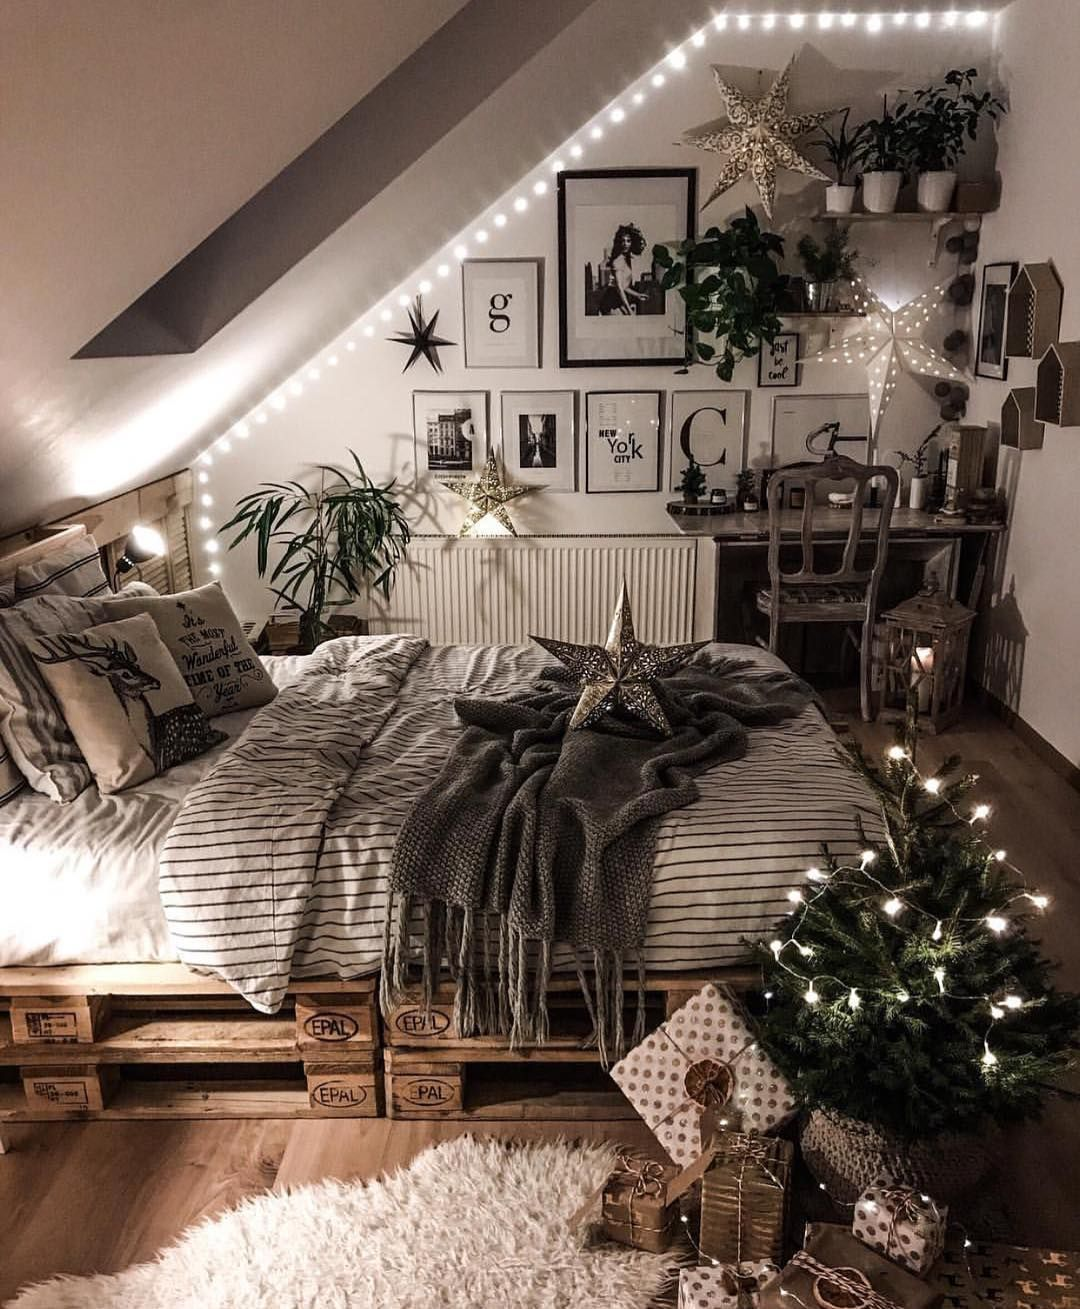 Photo of Top 37 Christmas Bedroom Decorations Ideas 2020 – newyearlights. com